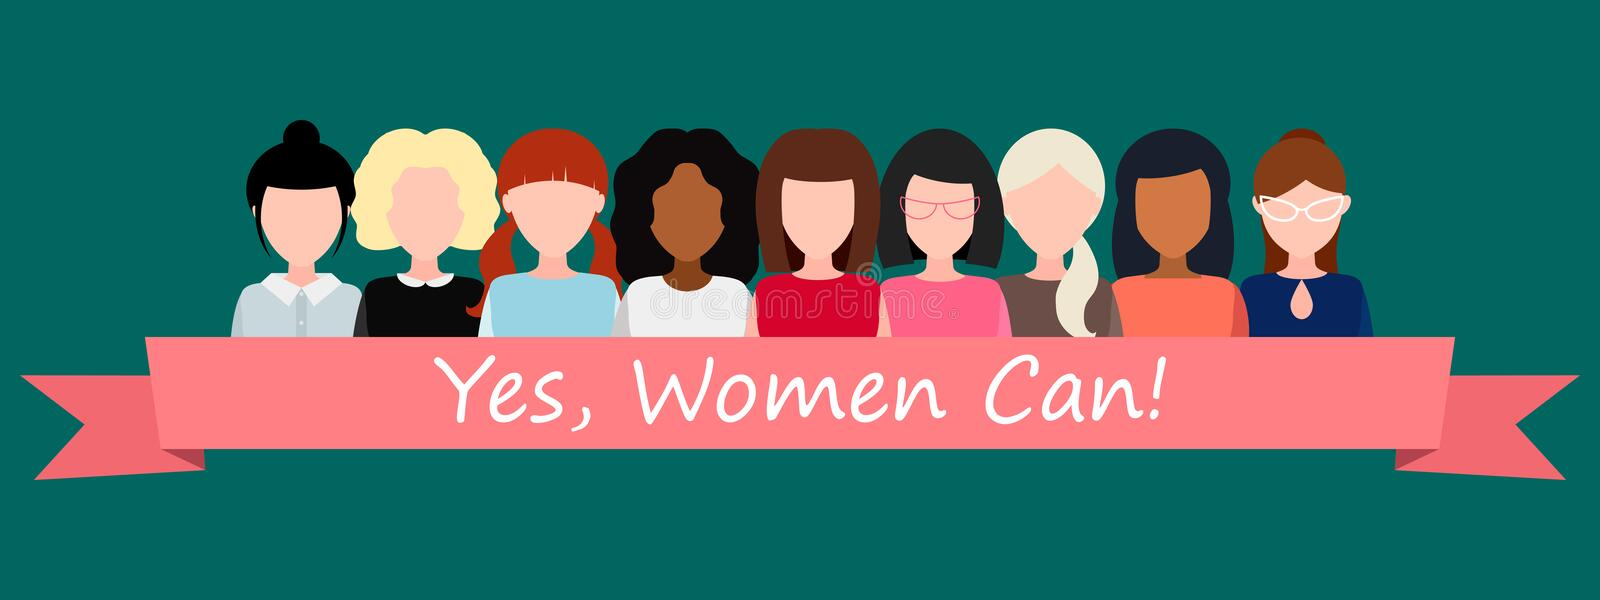 Yes, women can! Symbol of female power, woman rights, protest, feminism. Vector. Yes, women can! Strong girl. Symbol of female power, woman rights, protest vector illustration